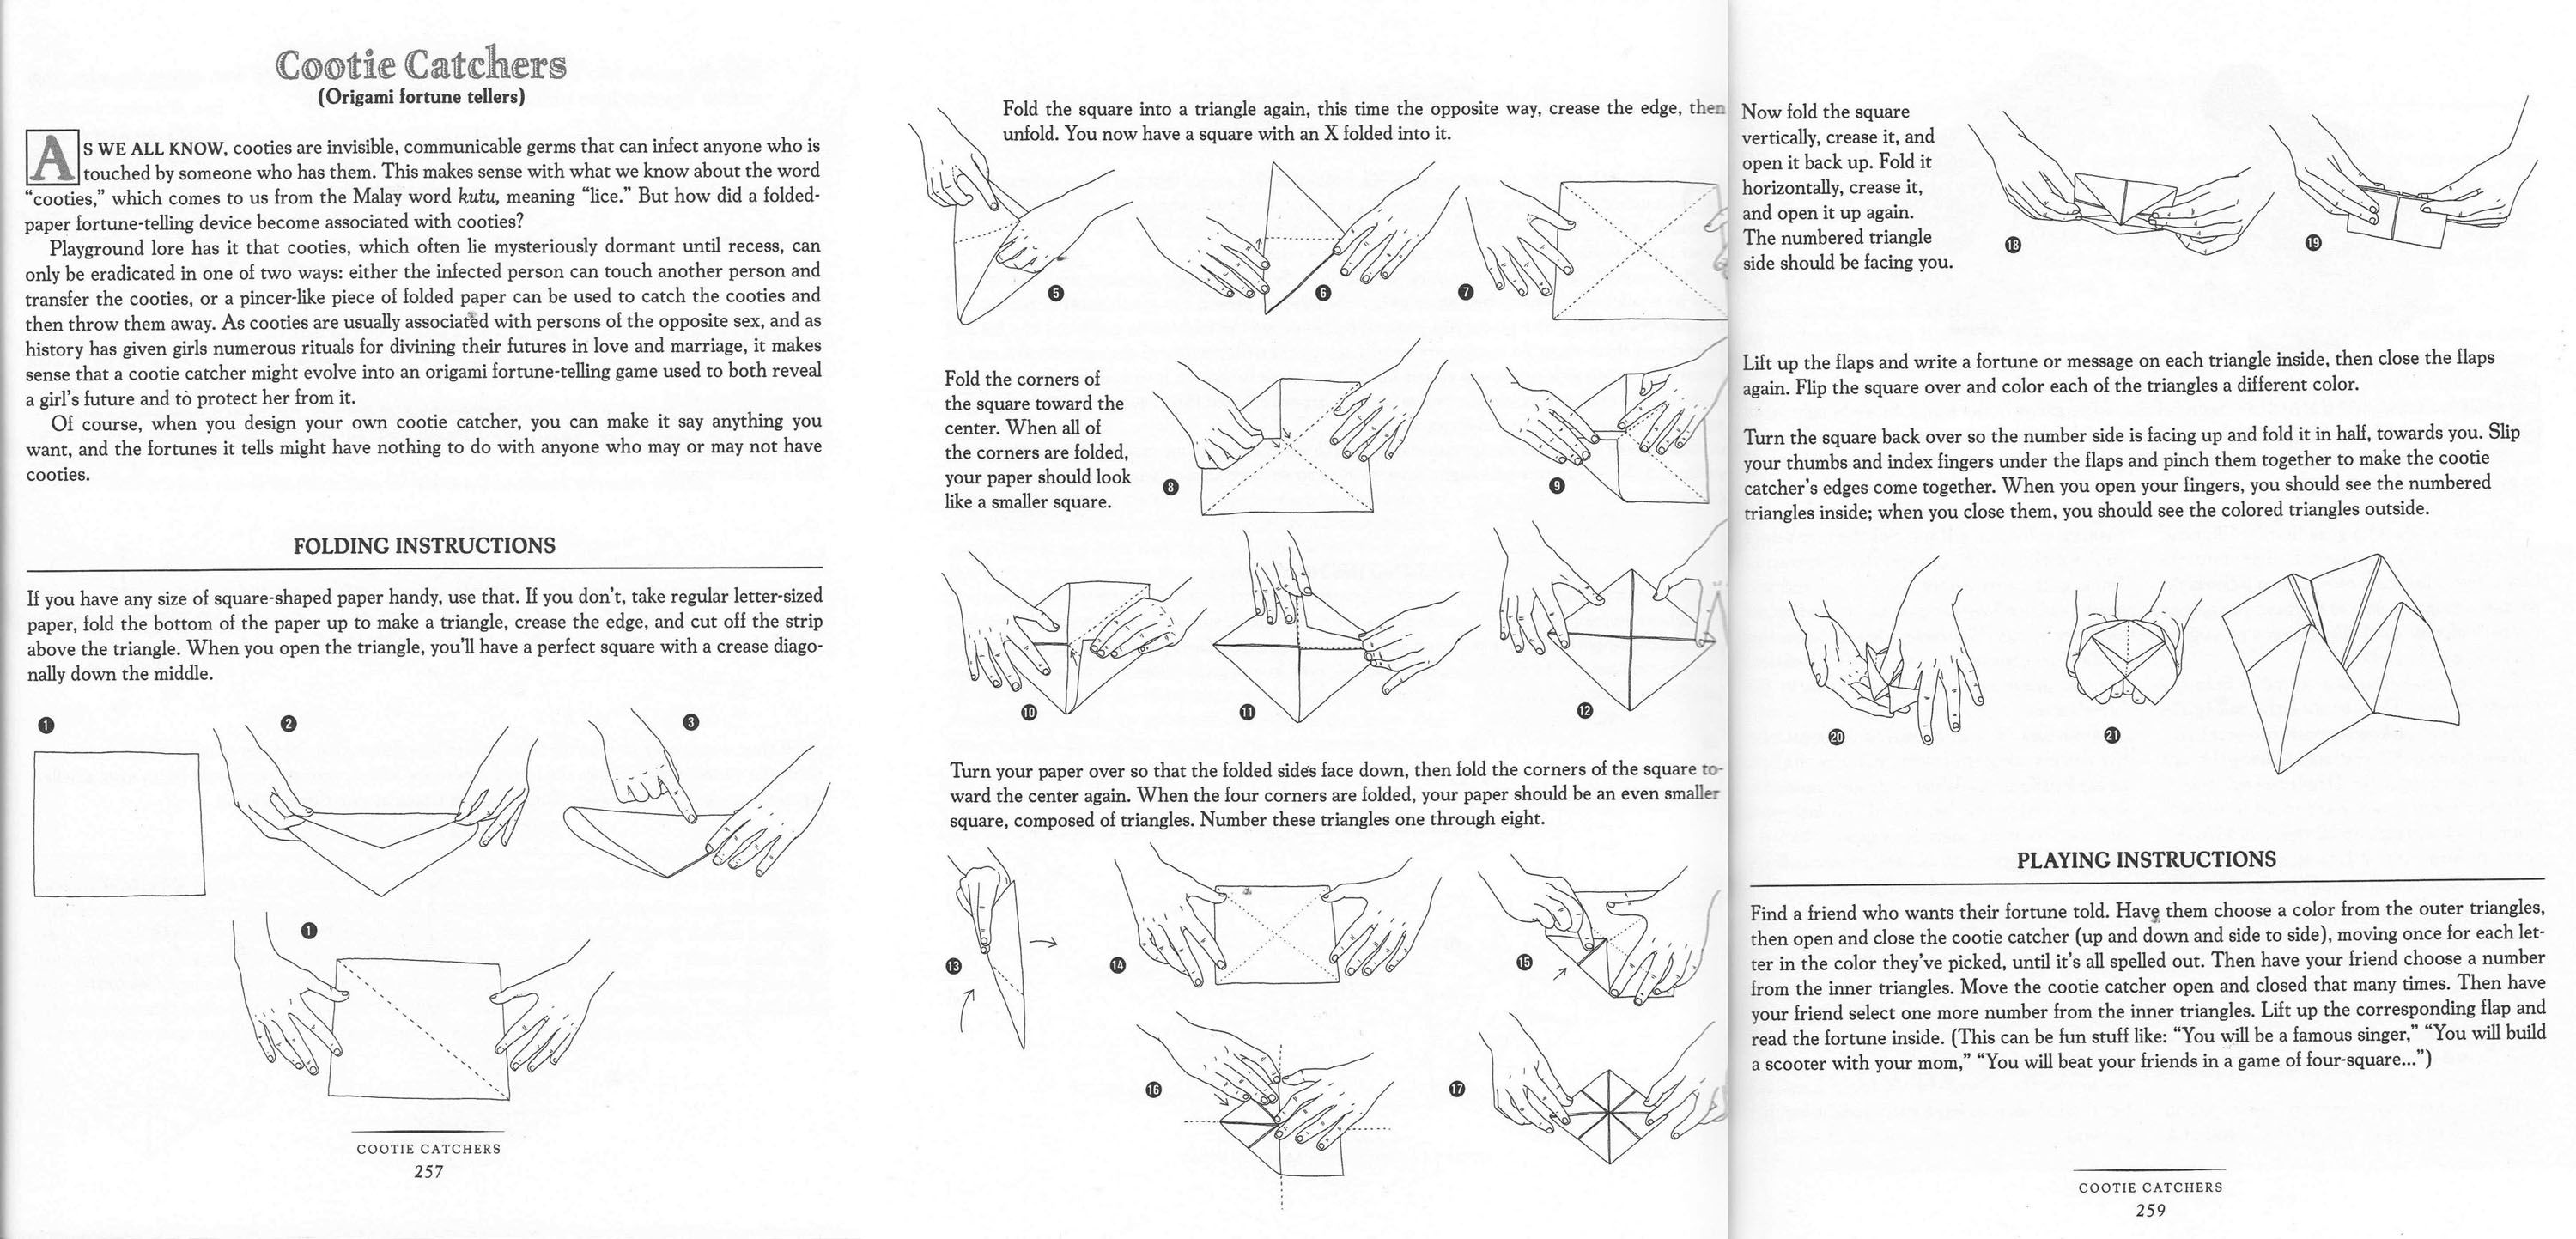 how to make a cootie catcher illustrations published in the daring book for girls how to. Black Bedroom Furniture Sets. Home Design Ideas